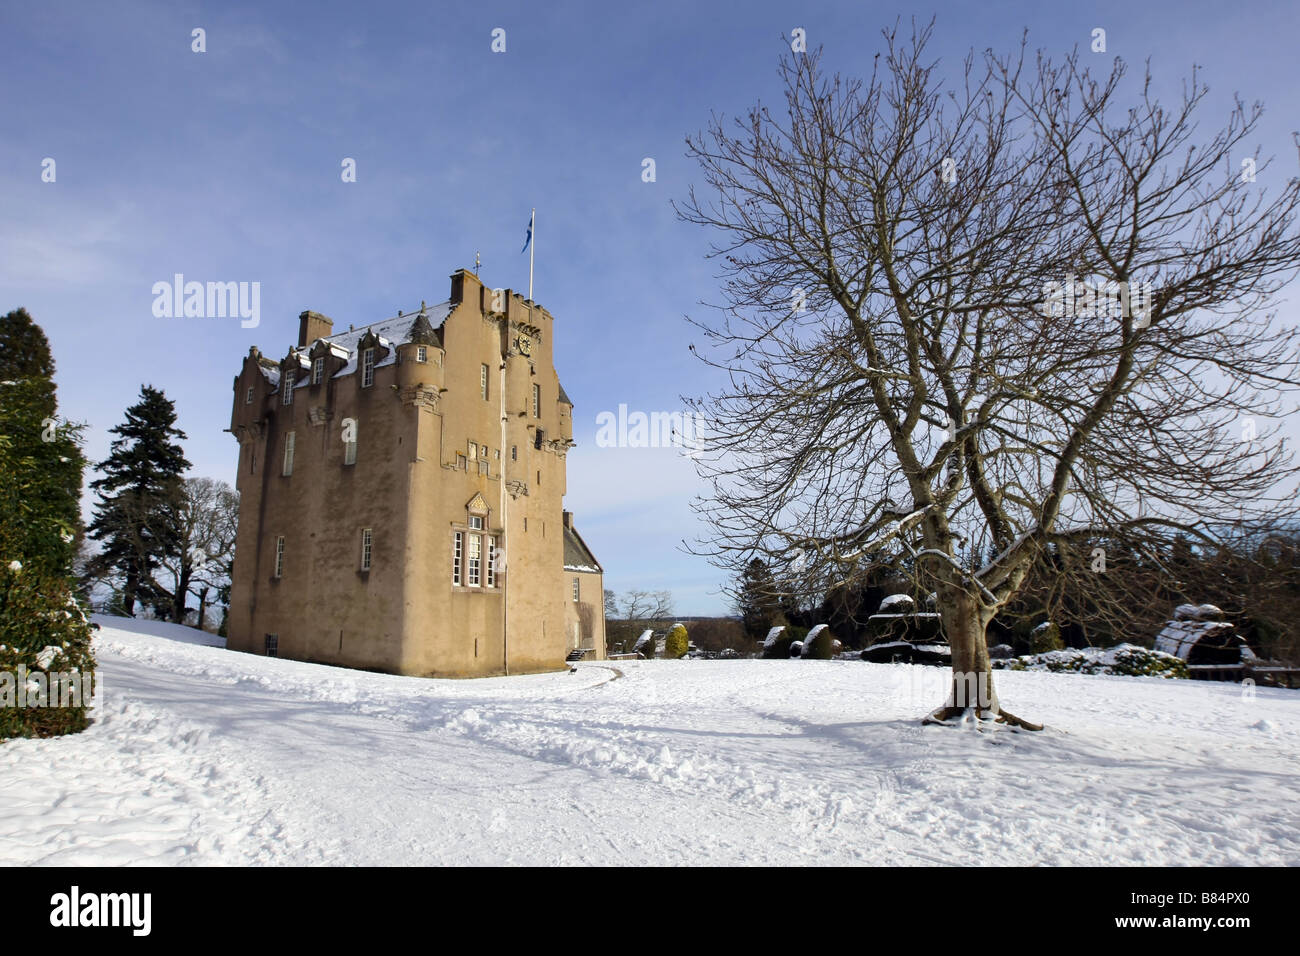 Exterior view of Crathes Castle and grounds near Banchory, Aberdeenshire, Scotland, UK covered in snow during winter - Stock Image